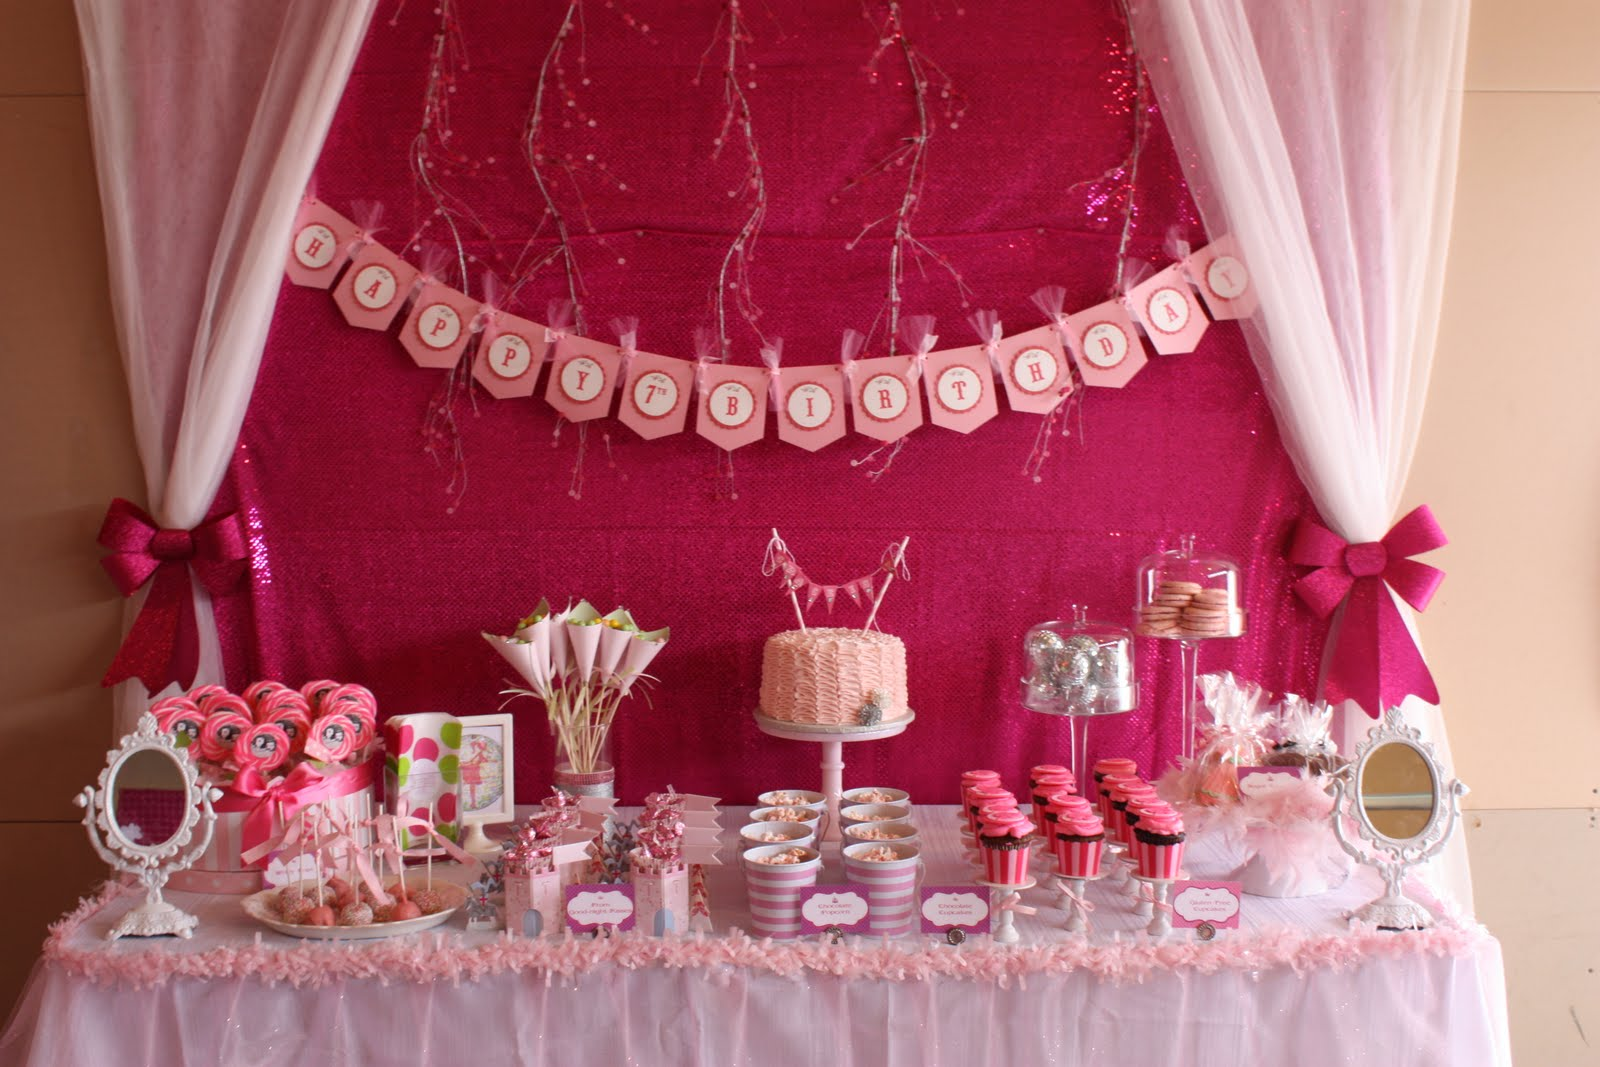 Buckets Of Grace Enchanted Prom Birthday Party Part Ii The Sweets Table